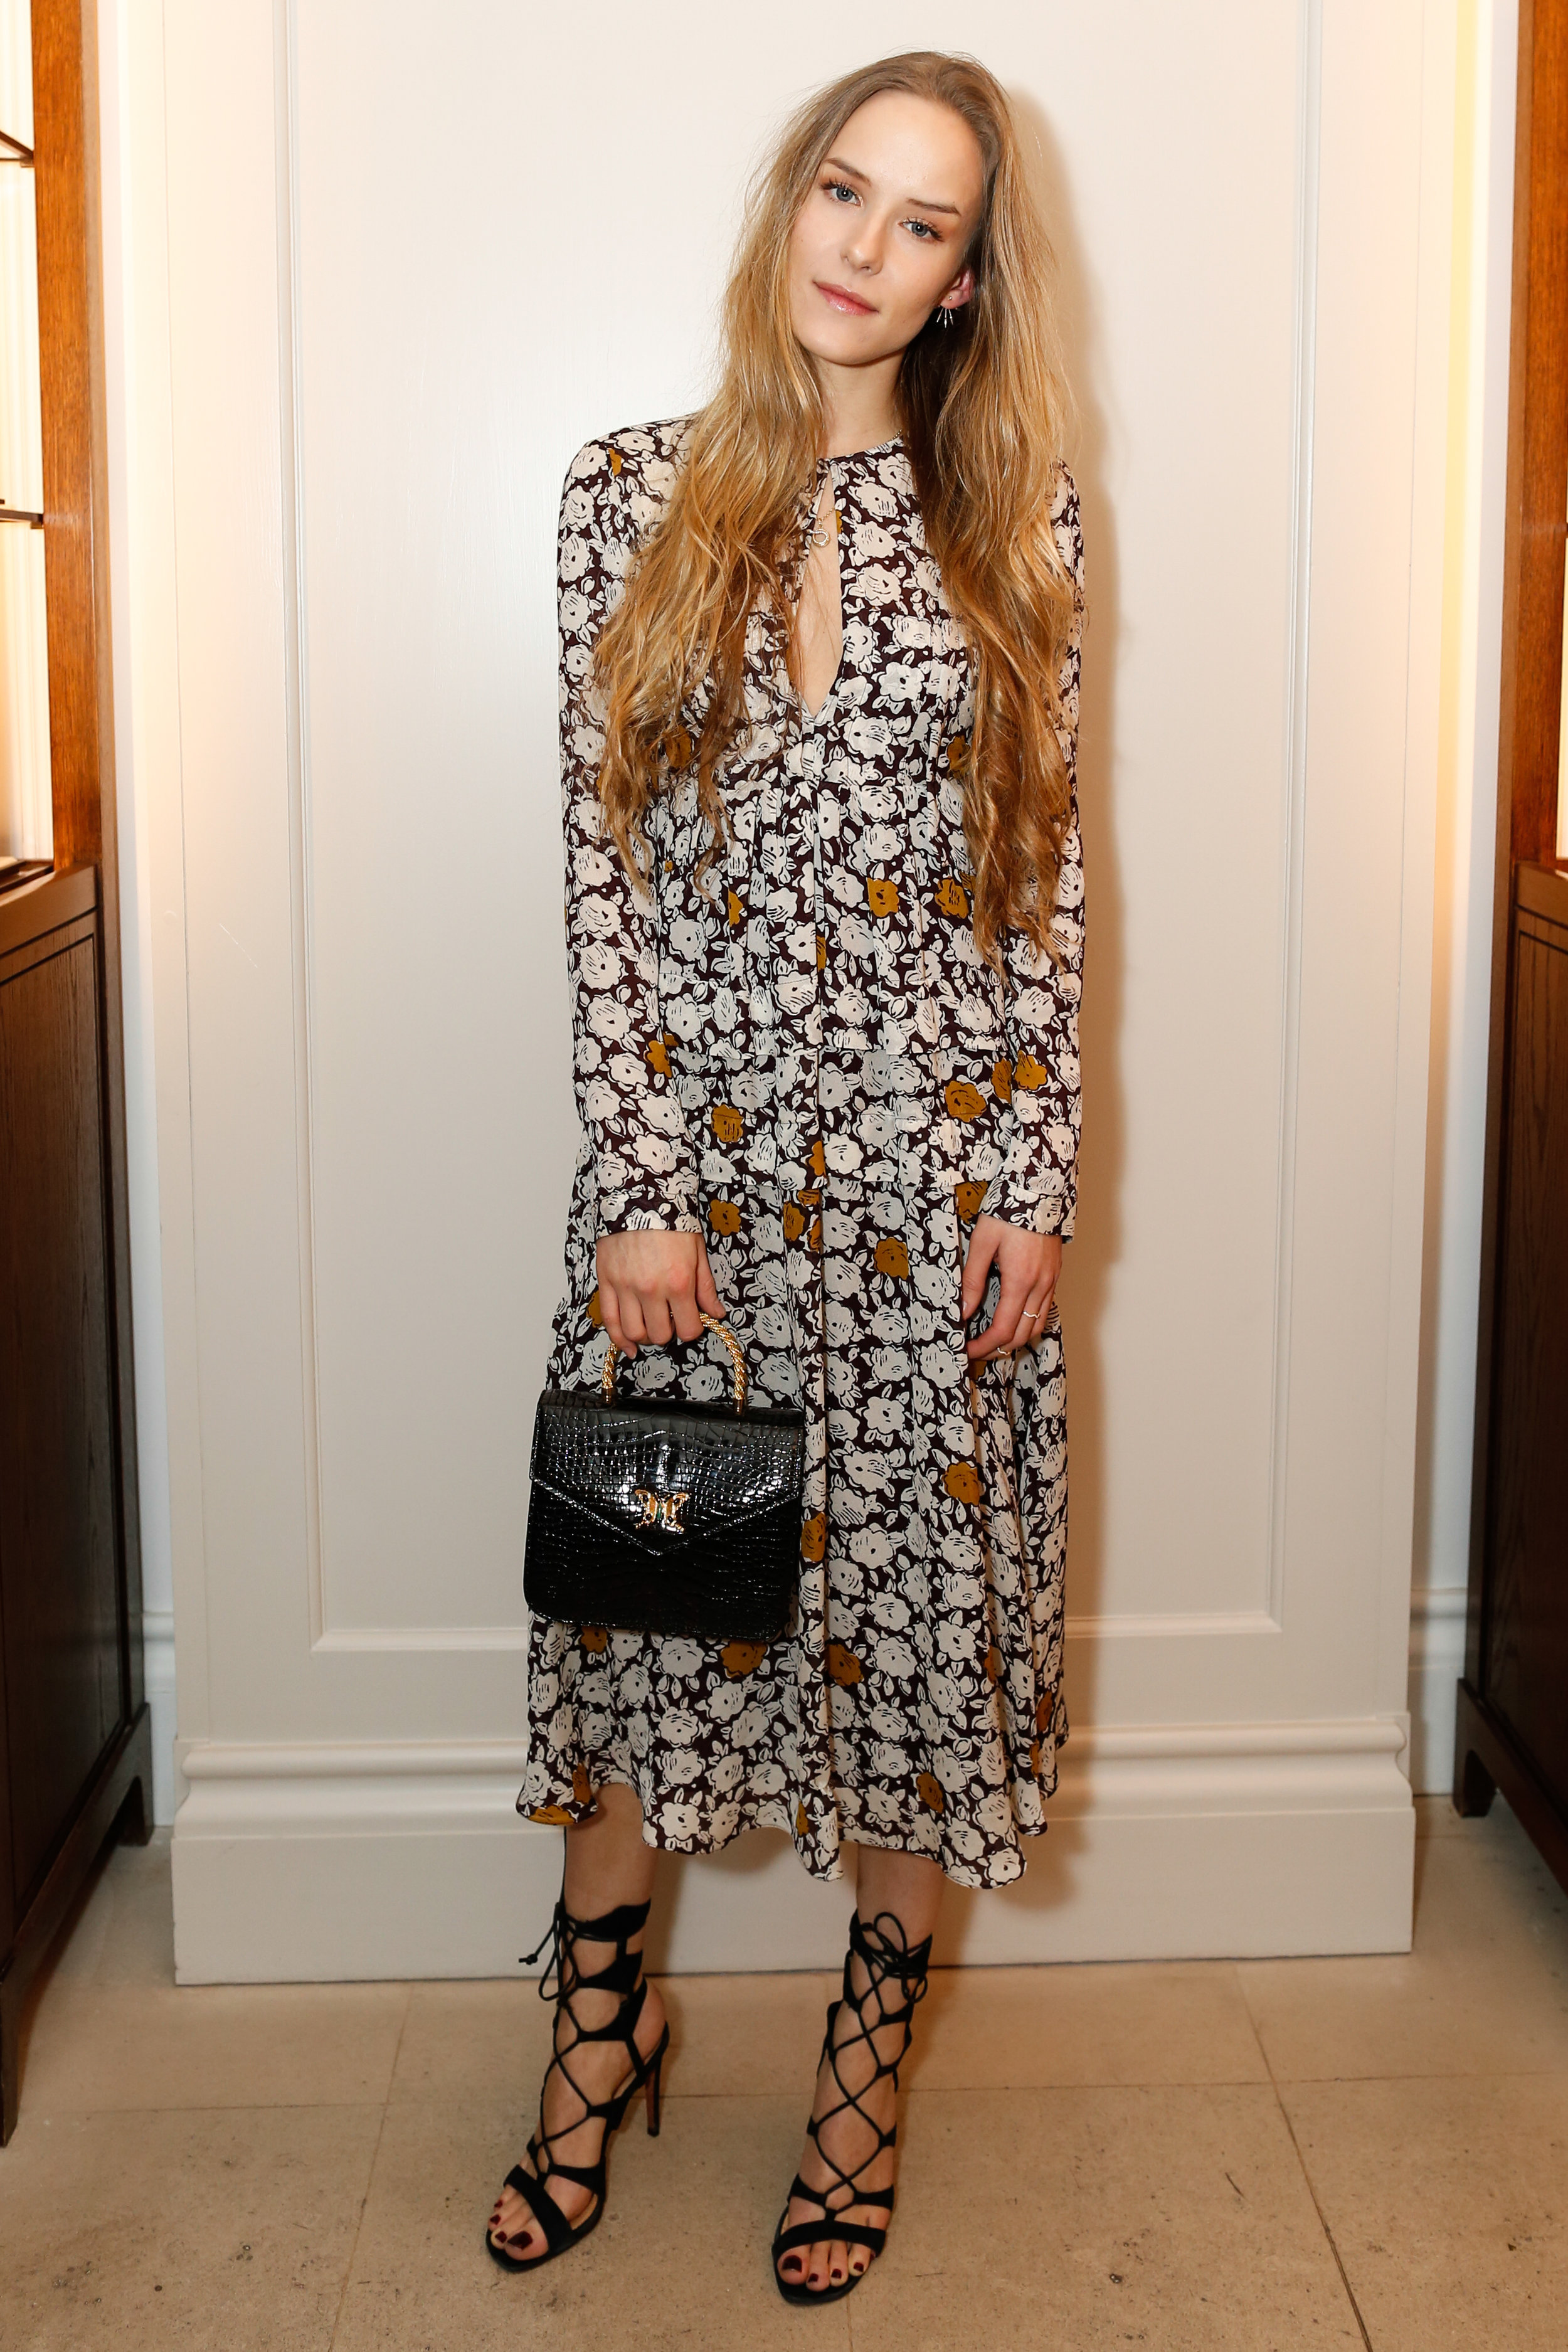 Hum Fleming wearing Burberry at the Burberry So It Goes event at Thomas's, London, 9th February 2016